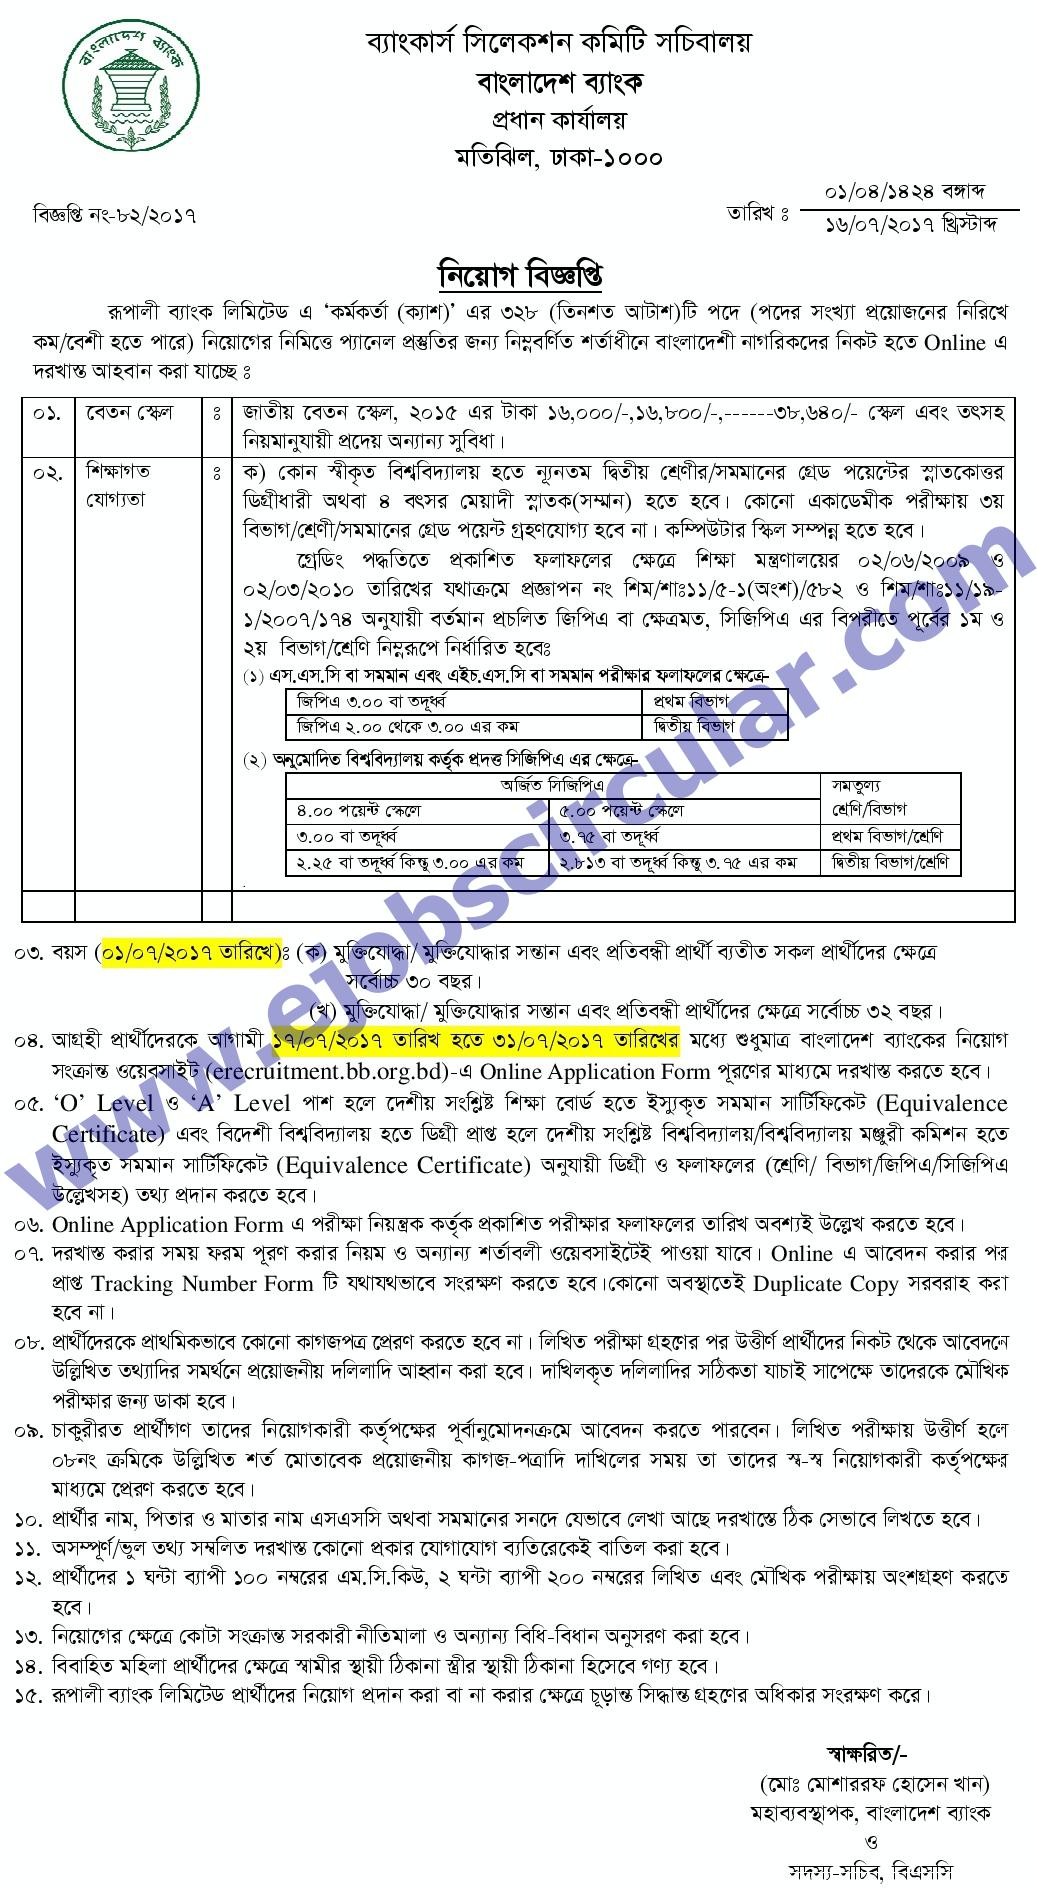 Rupali Bank Limited Job Circular Exam Notice